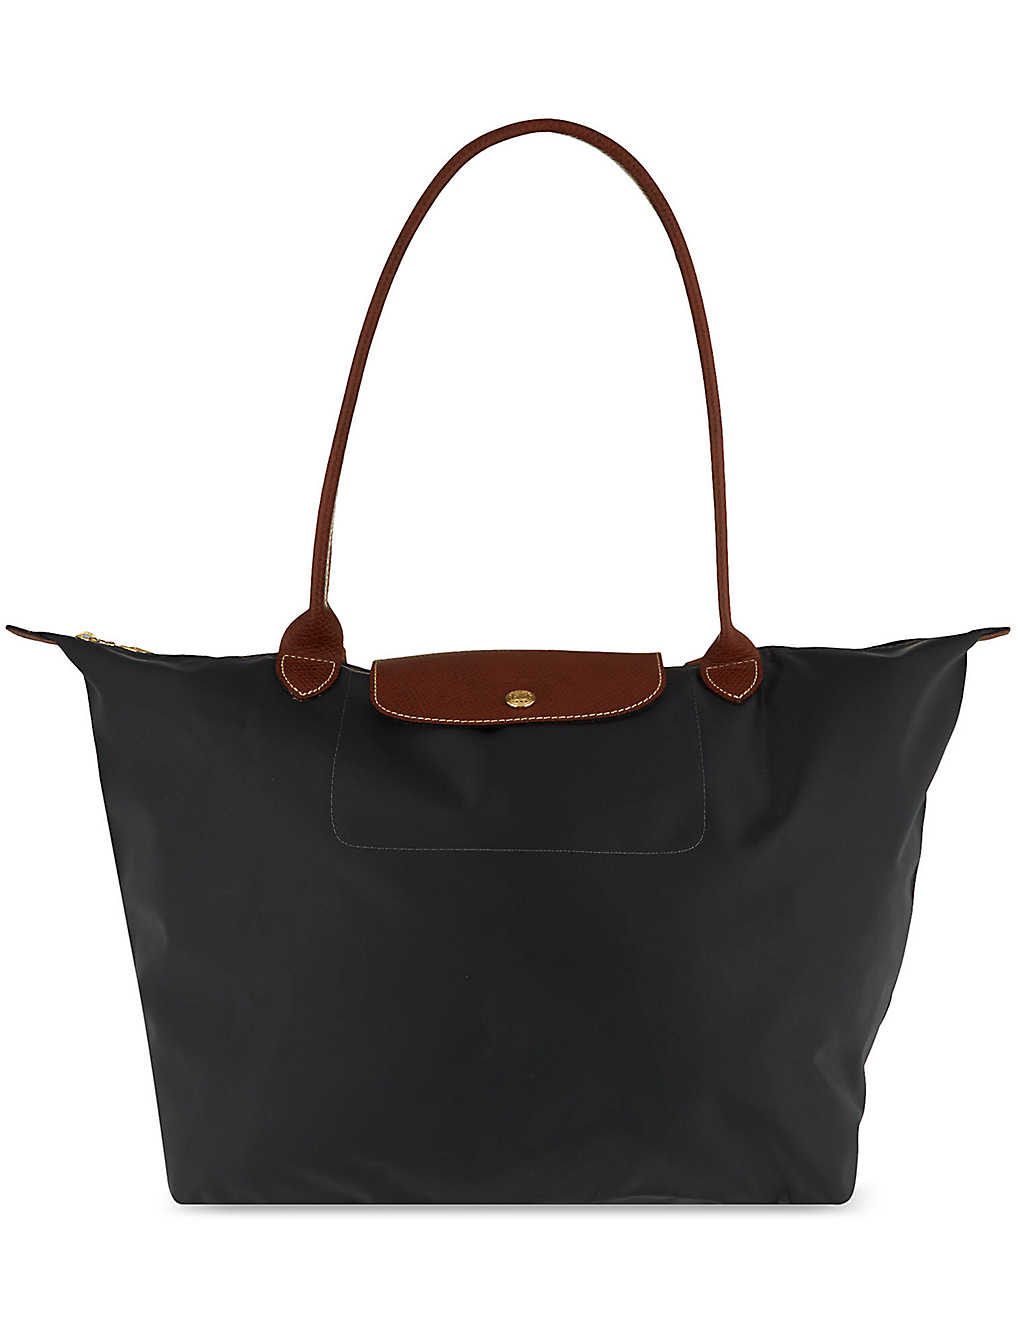 5ff36a0cb LONGCHAMP - Le Pliage large tote bag | Selfridges.com